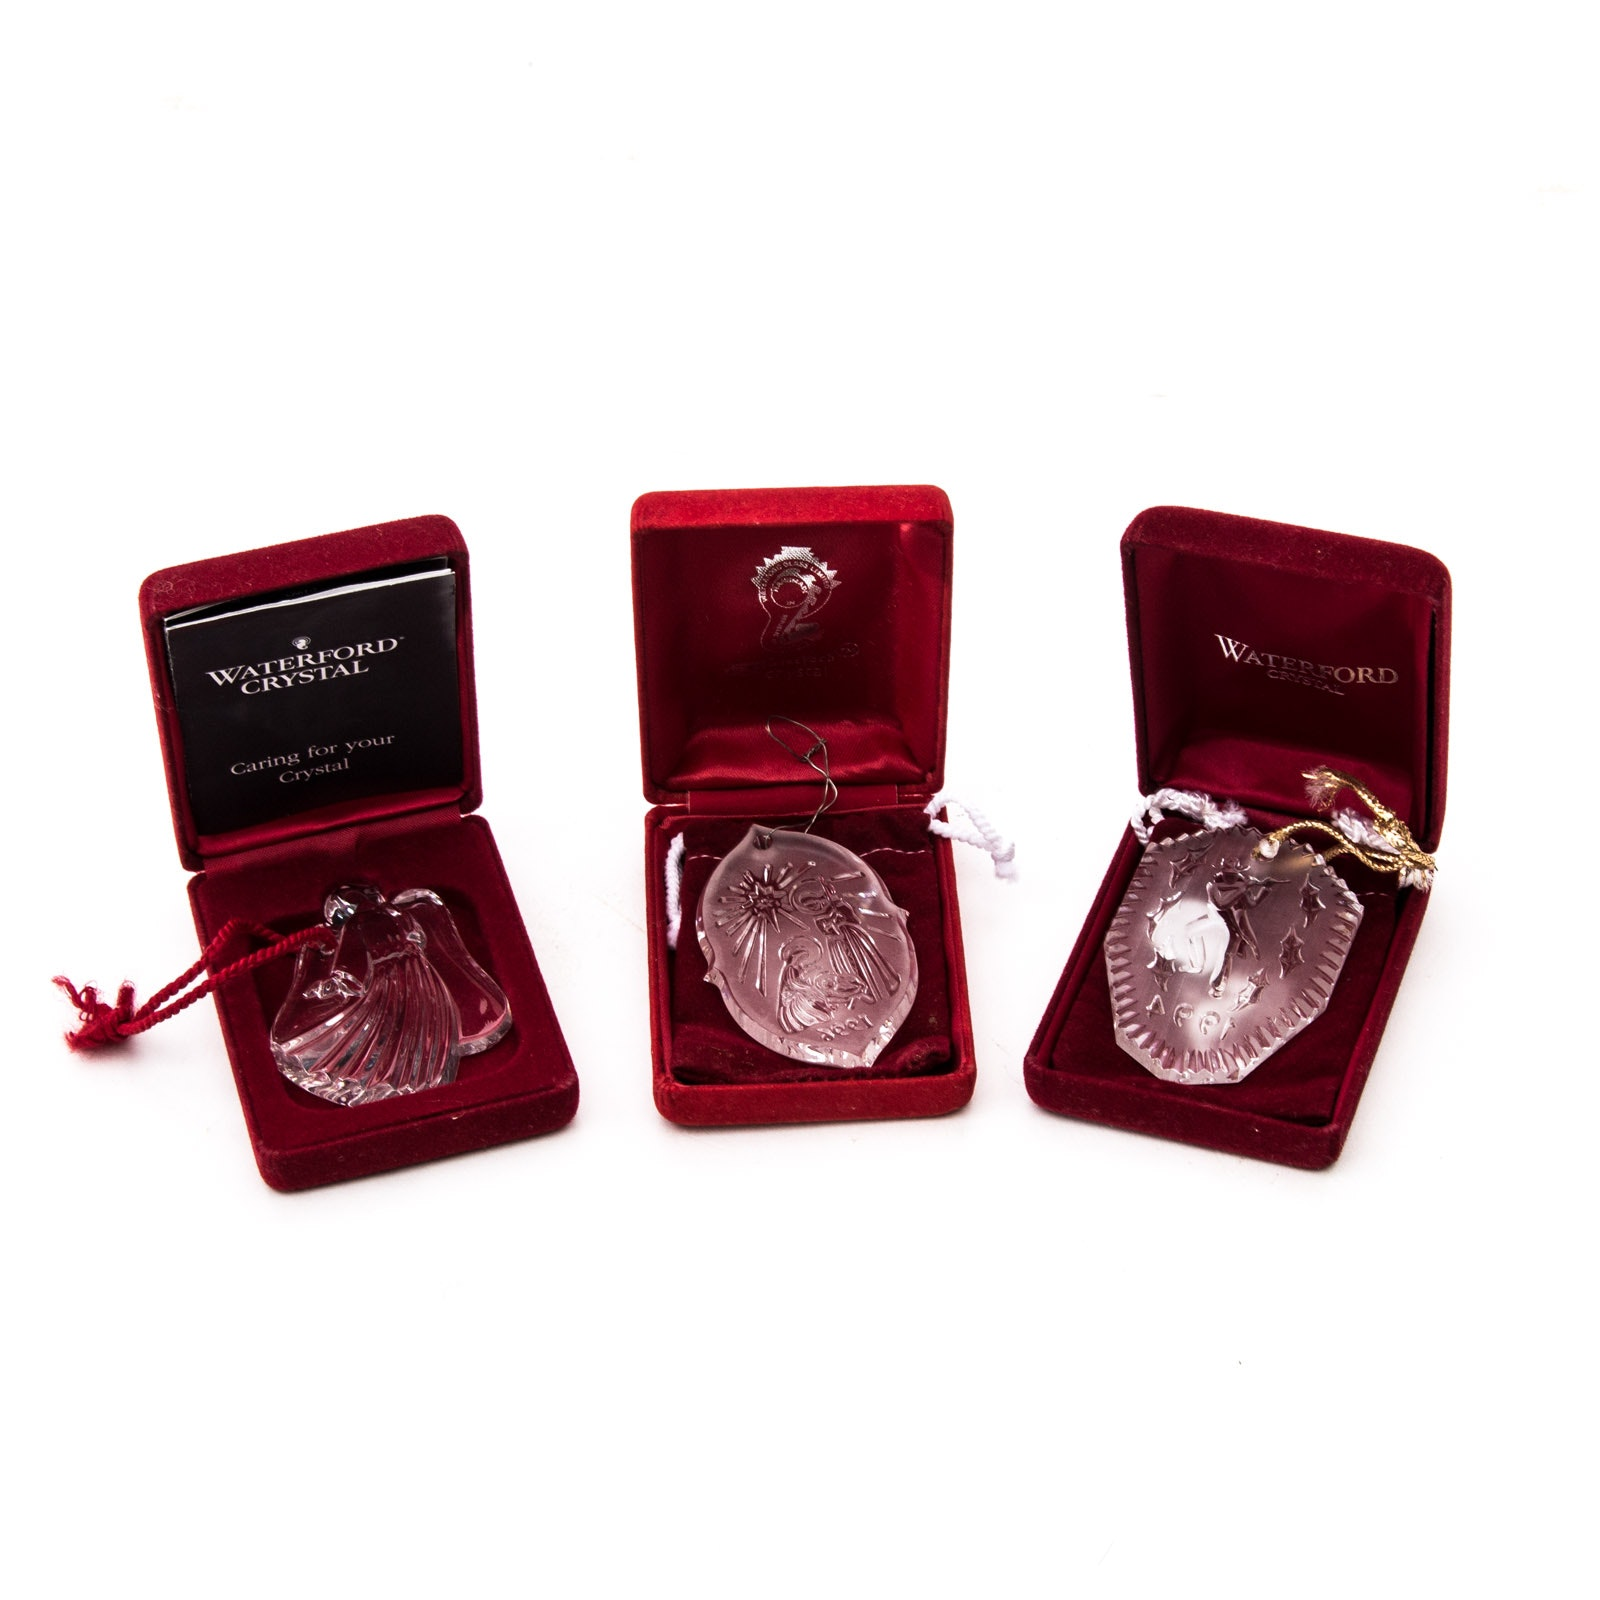 Waterford Crystal Ornament Collection